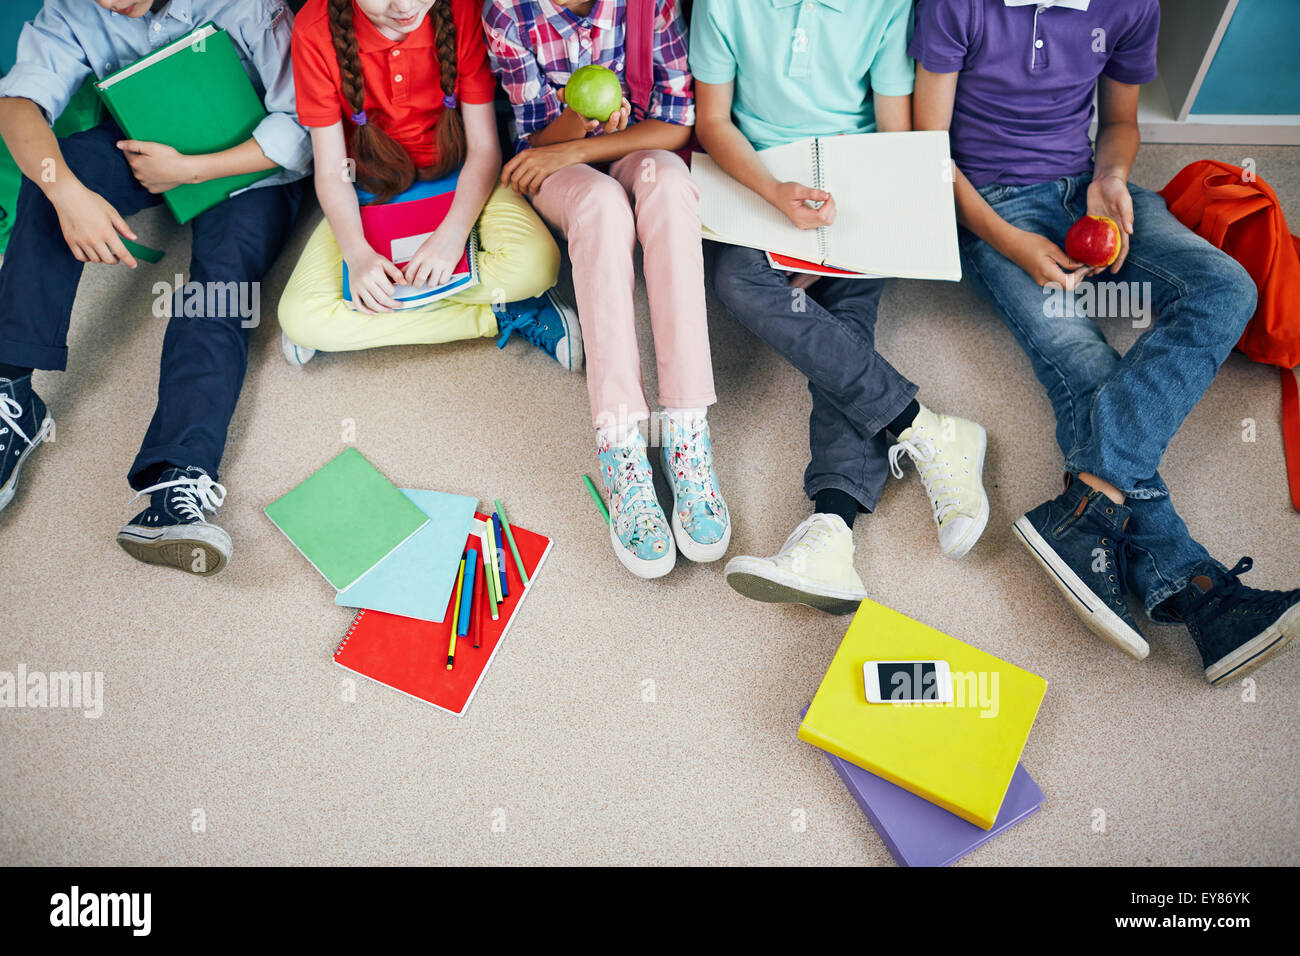 Group of schoolmates in casualwear sitting on the floor - Stock Image